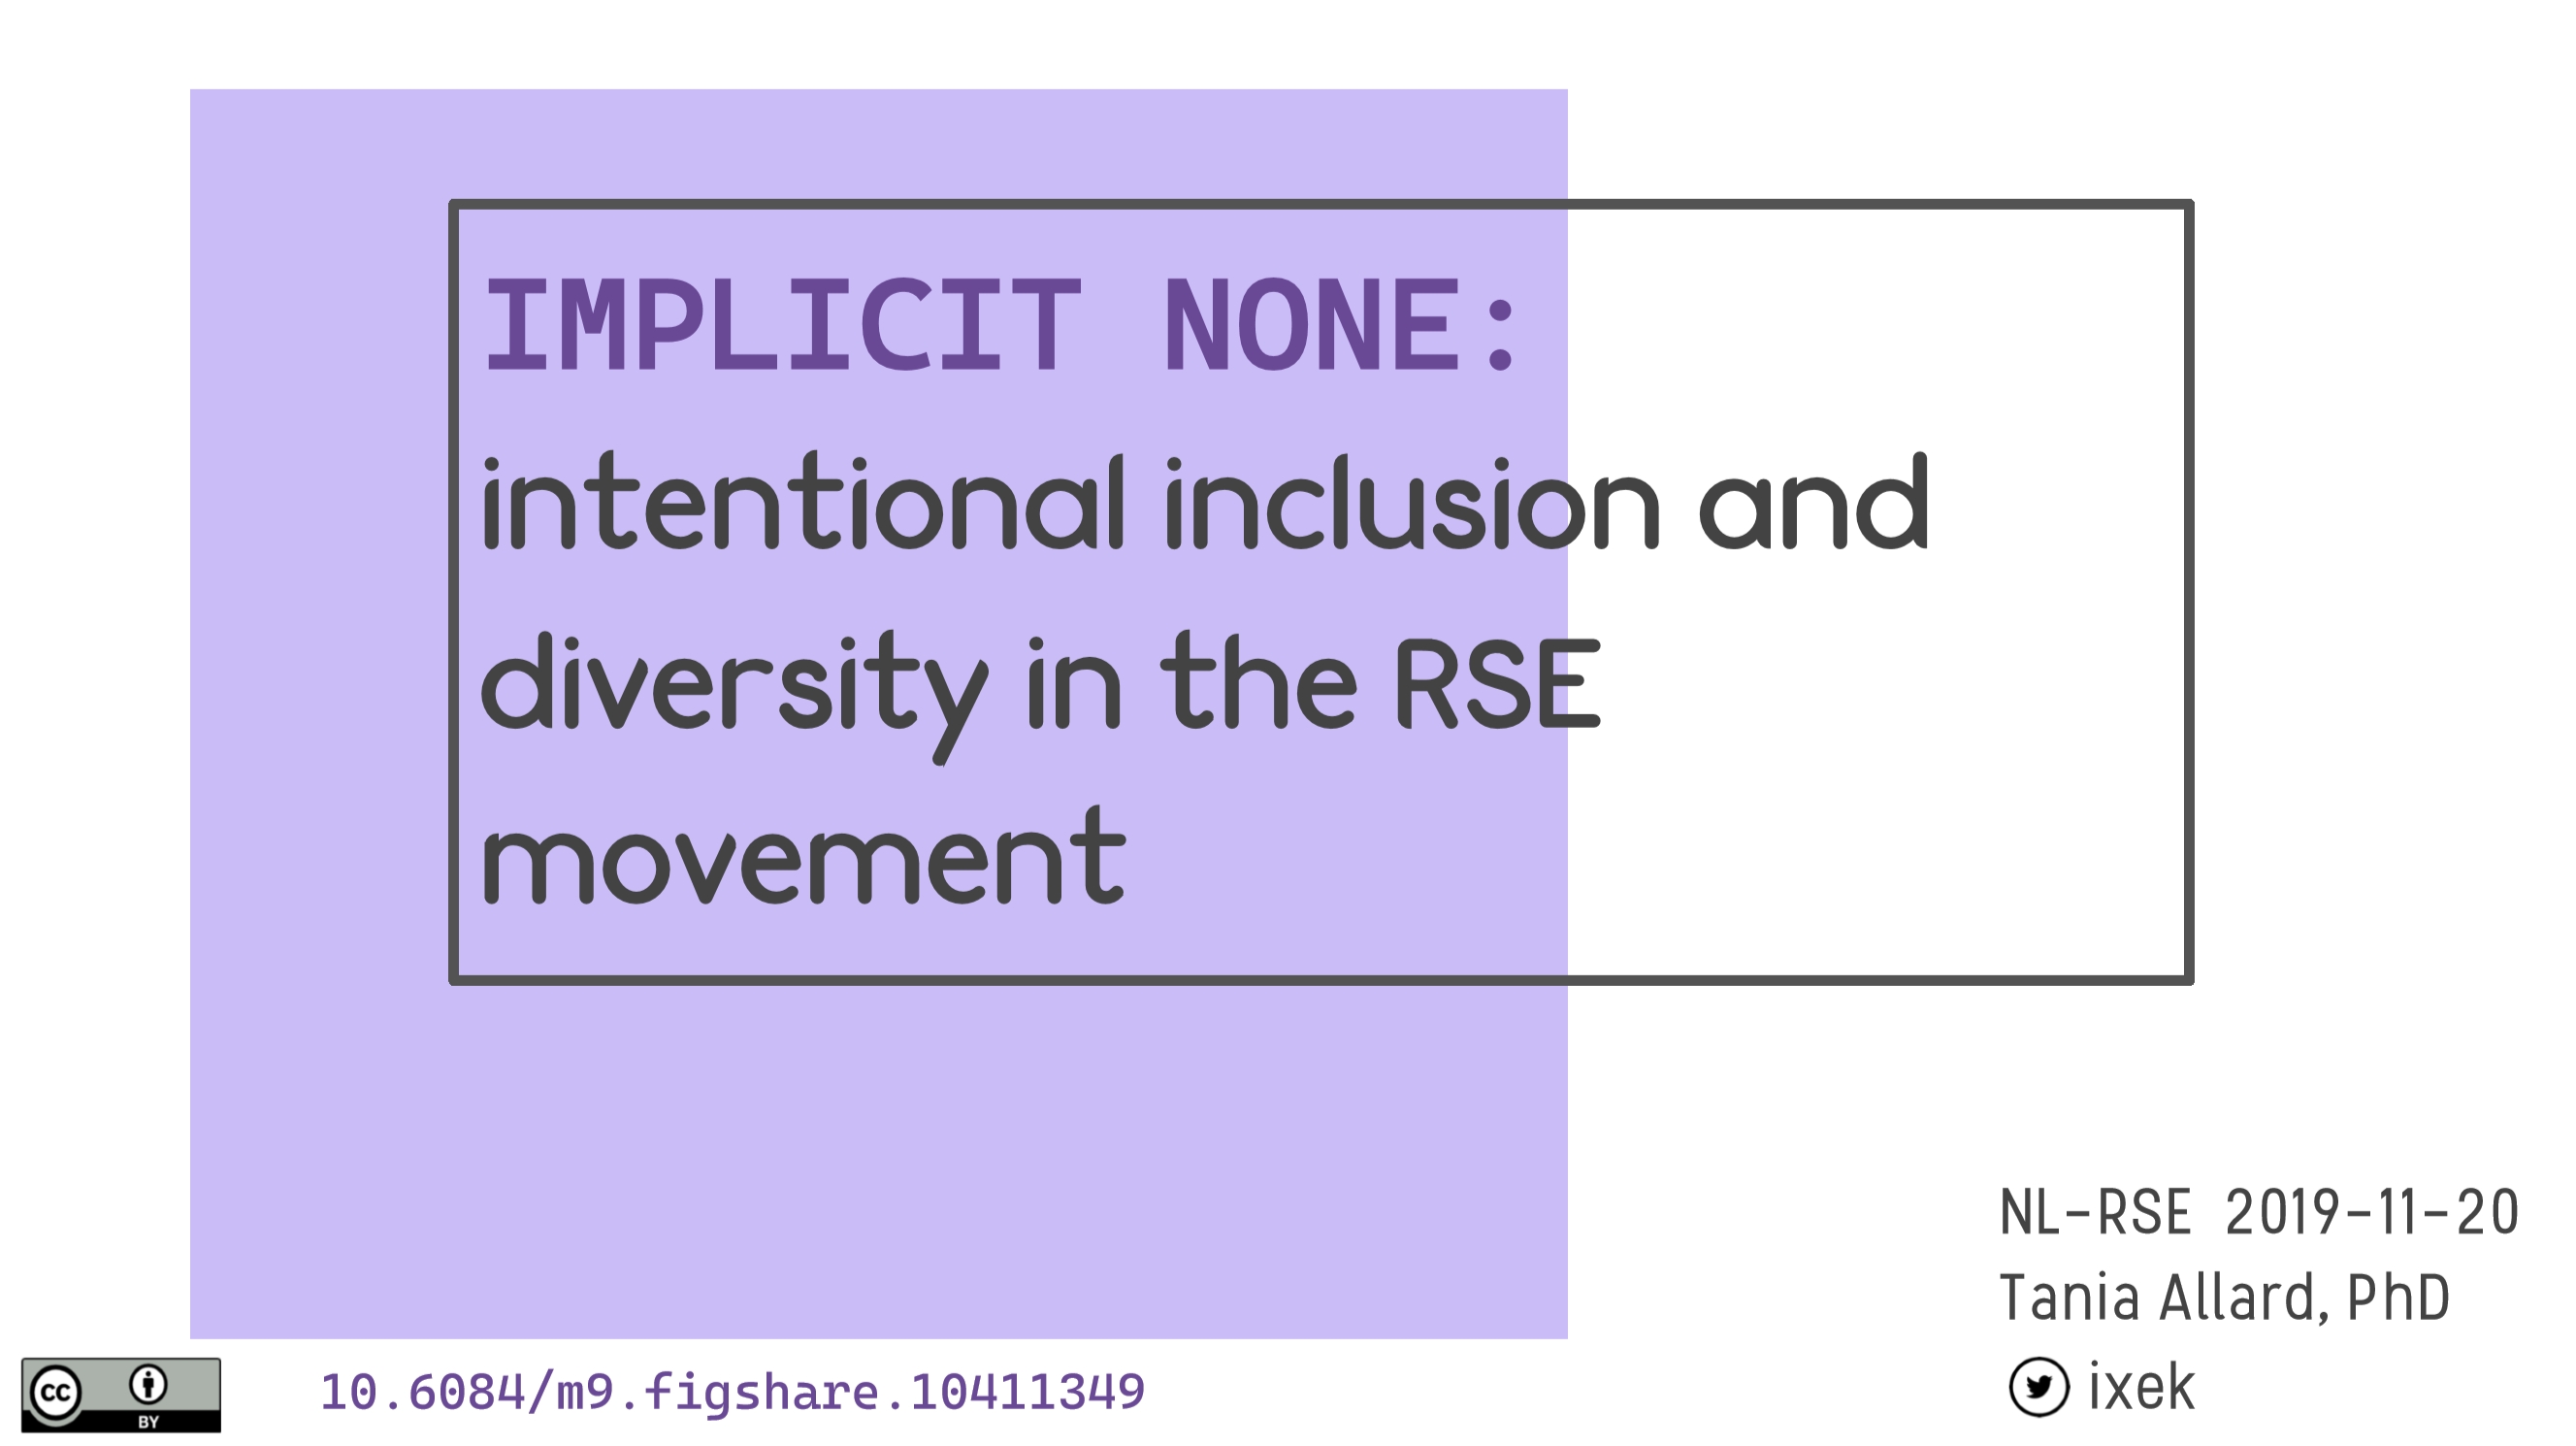 Tania Allard - Implicit none: intentional inclusion and diversity in the RSE movement